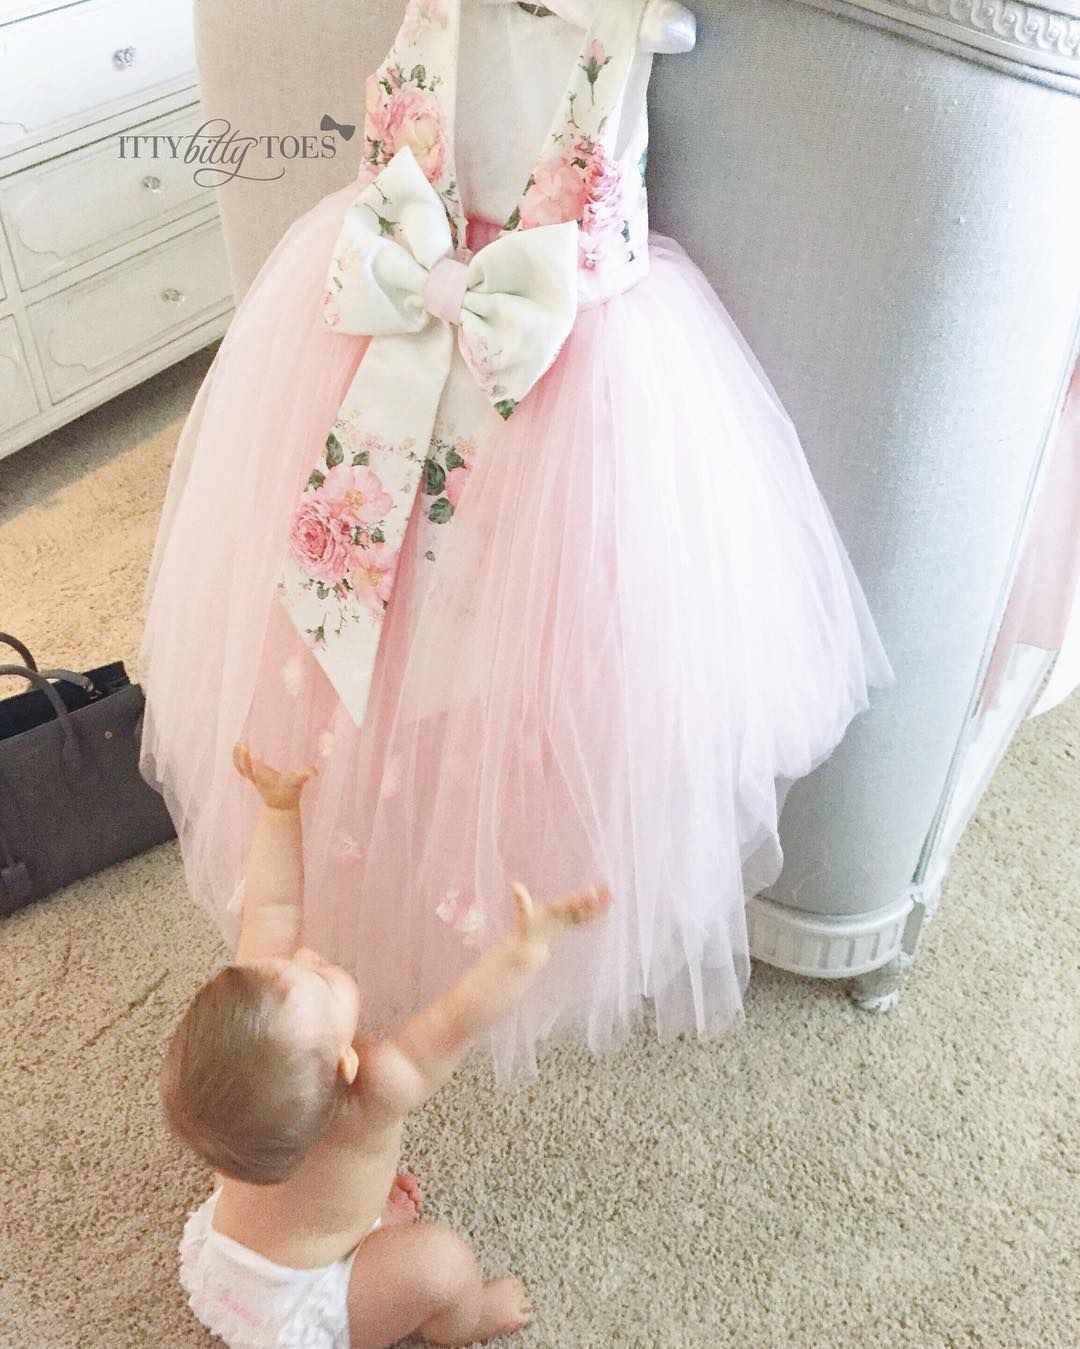 Weure in love with baby sienna and her new lili dress to order her